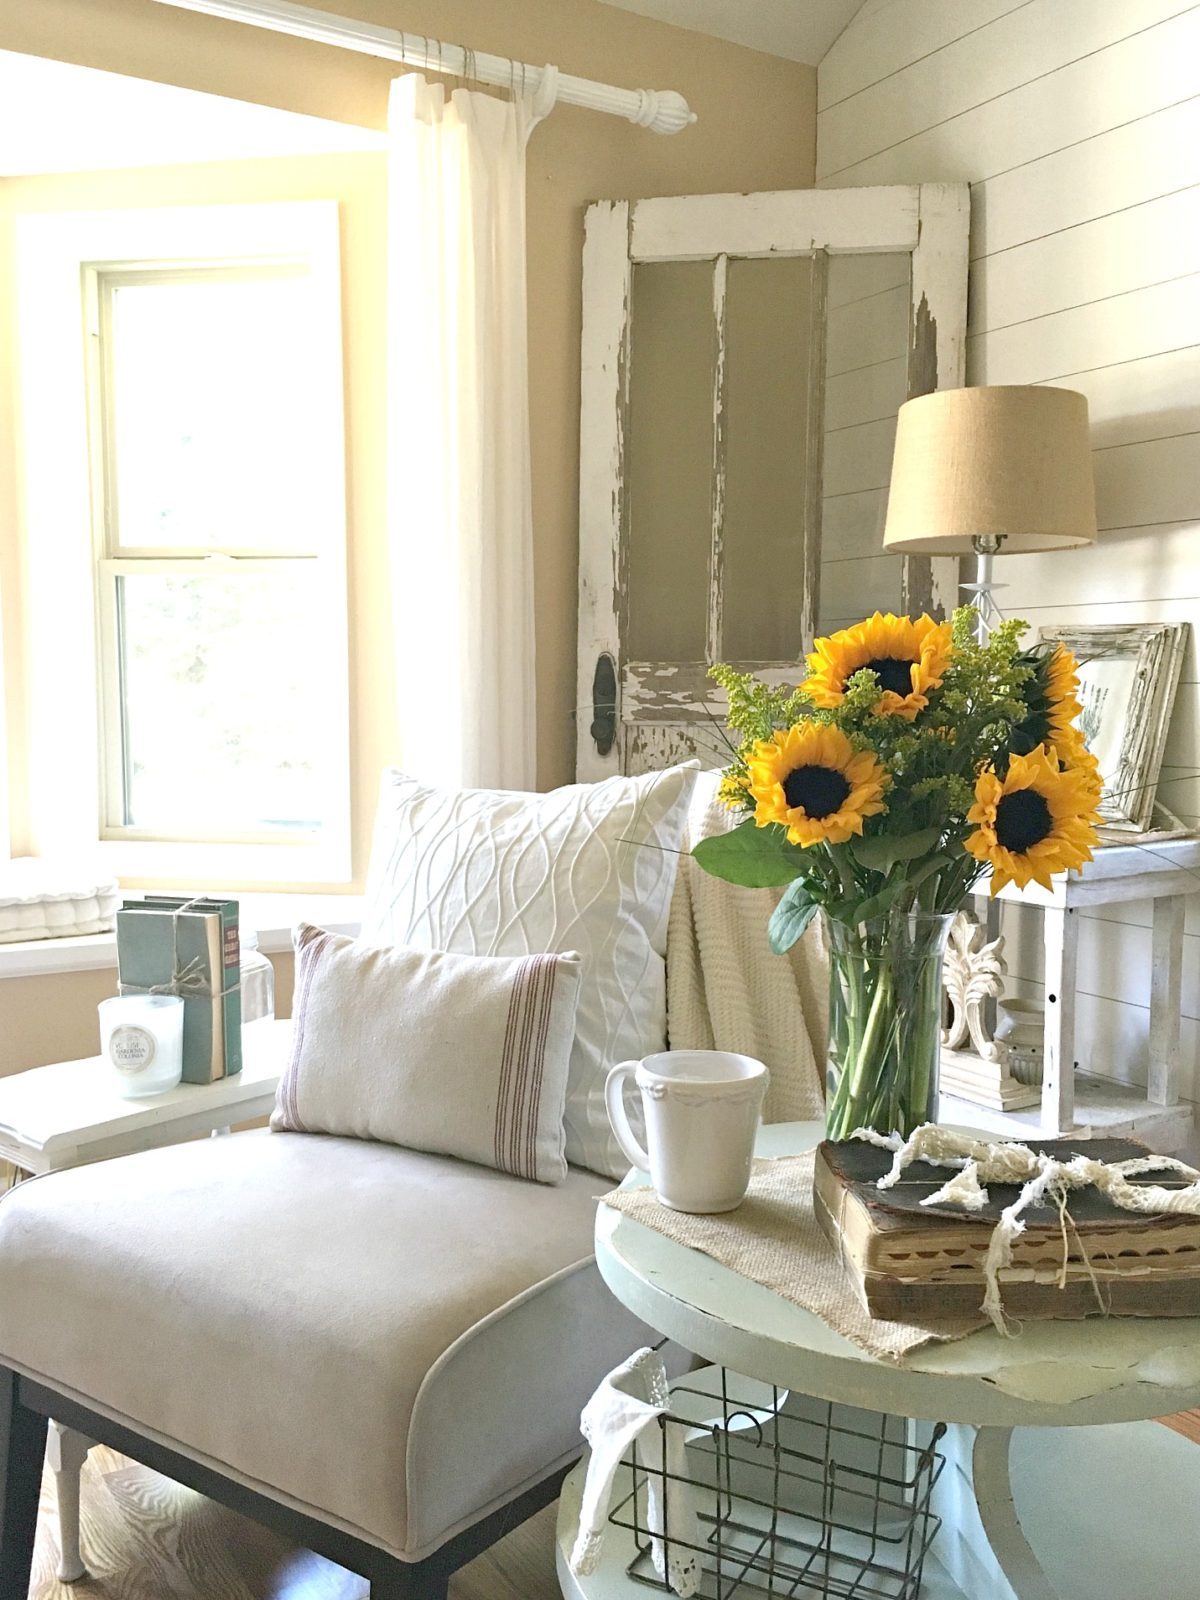 How i transitioned to farmhouse style little vintage nest - Home decorating basics style ...